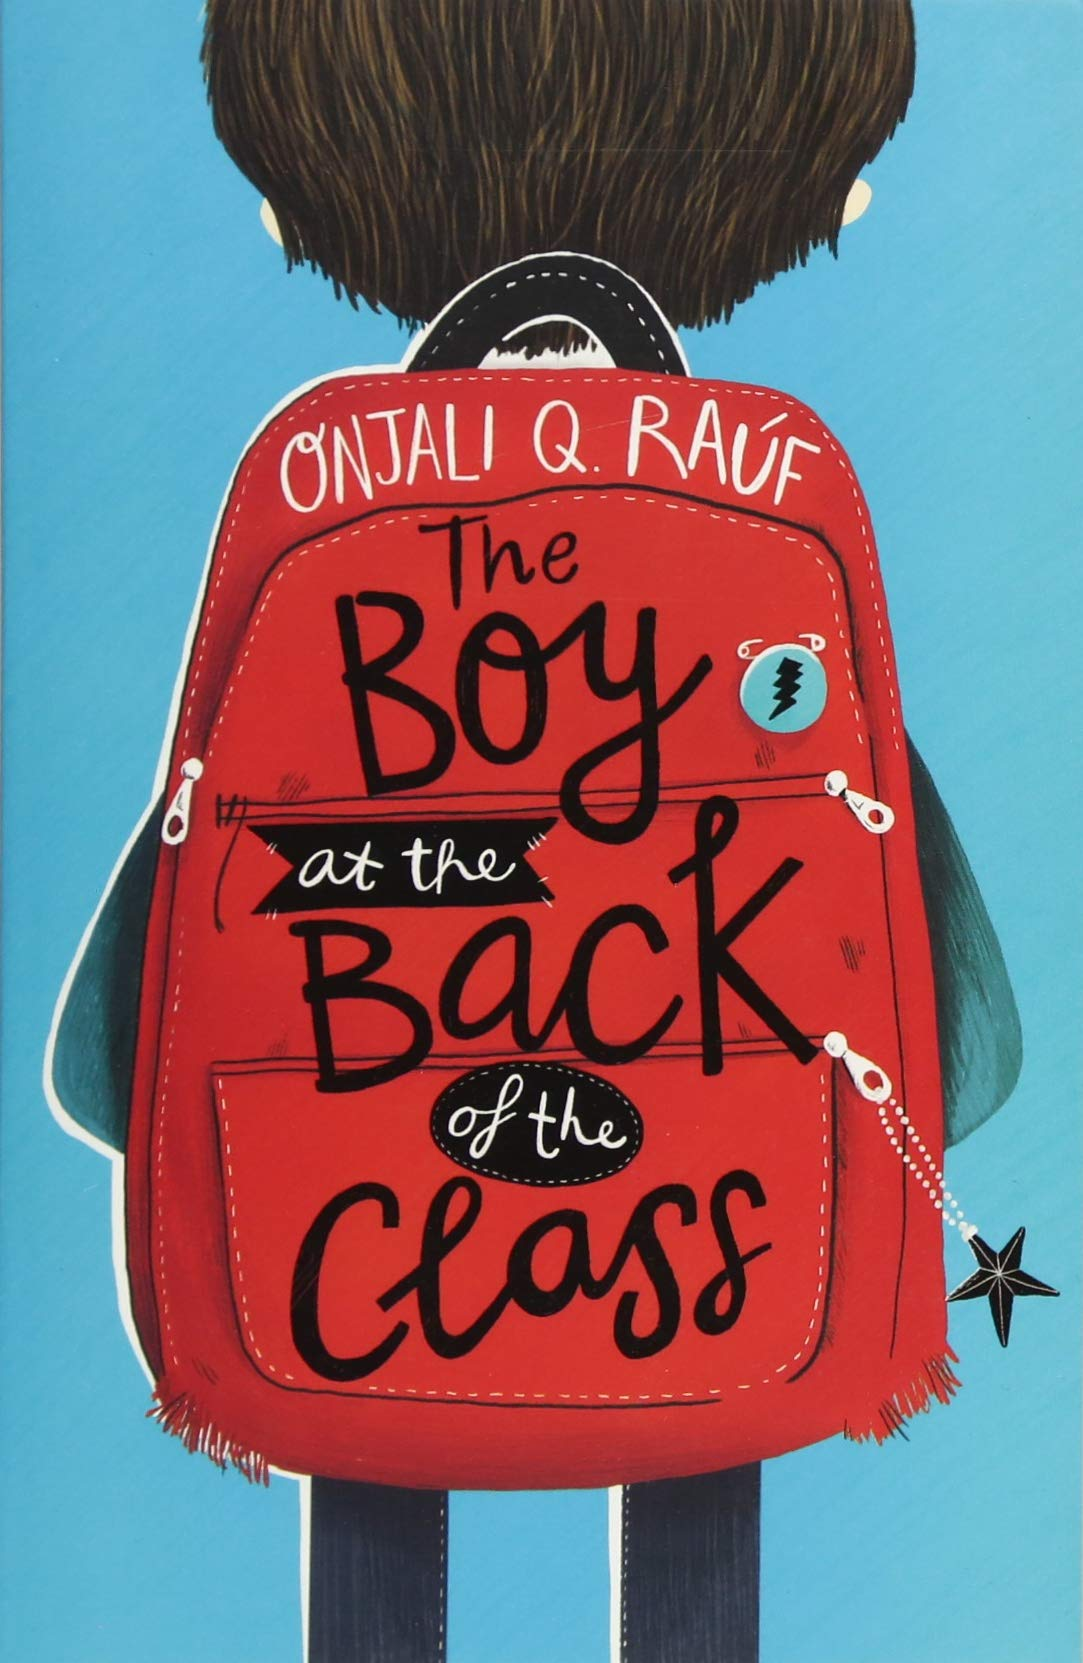 The Boy at the Back of the Class written by Onjali Q Rauf illustrated by Pippa Curnick